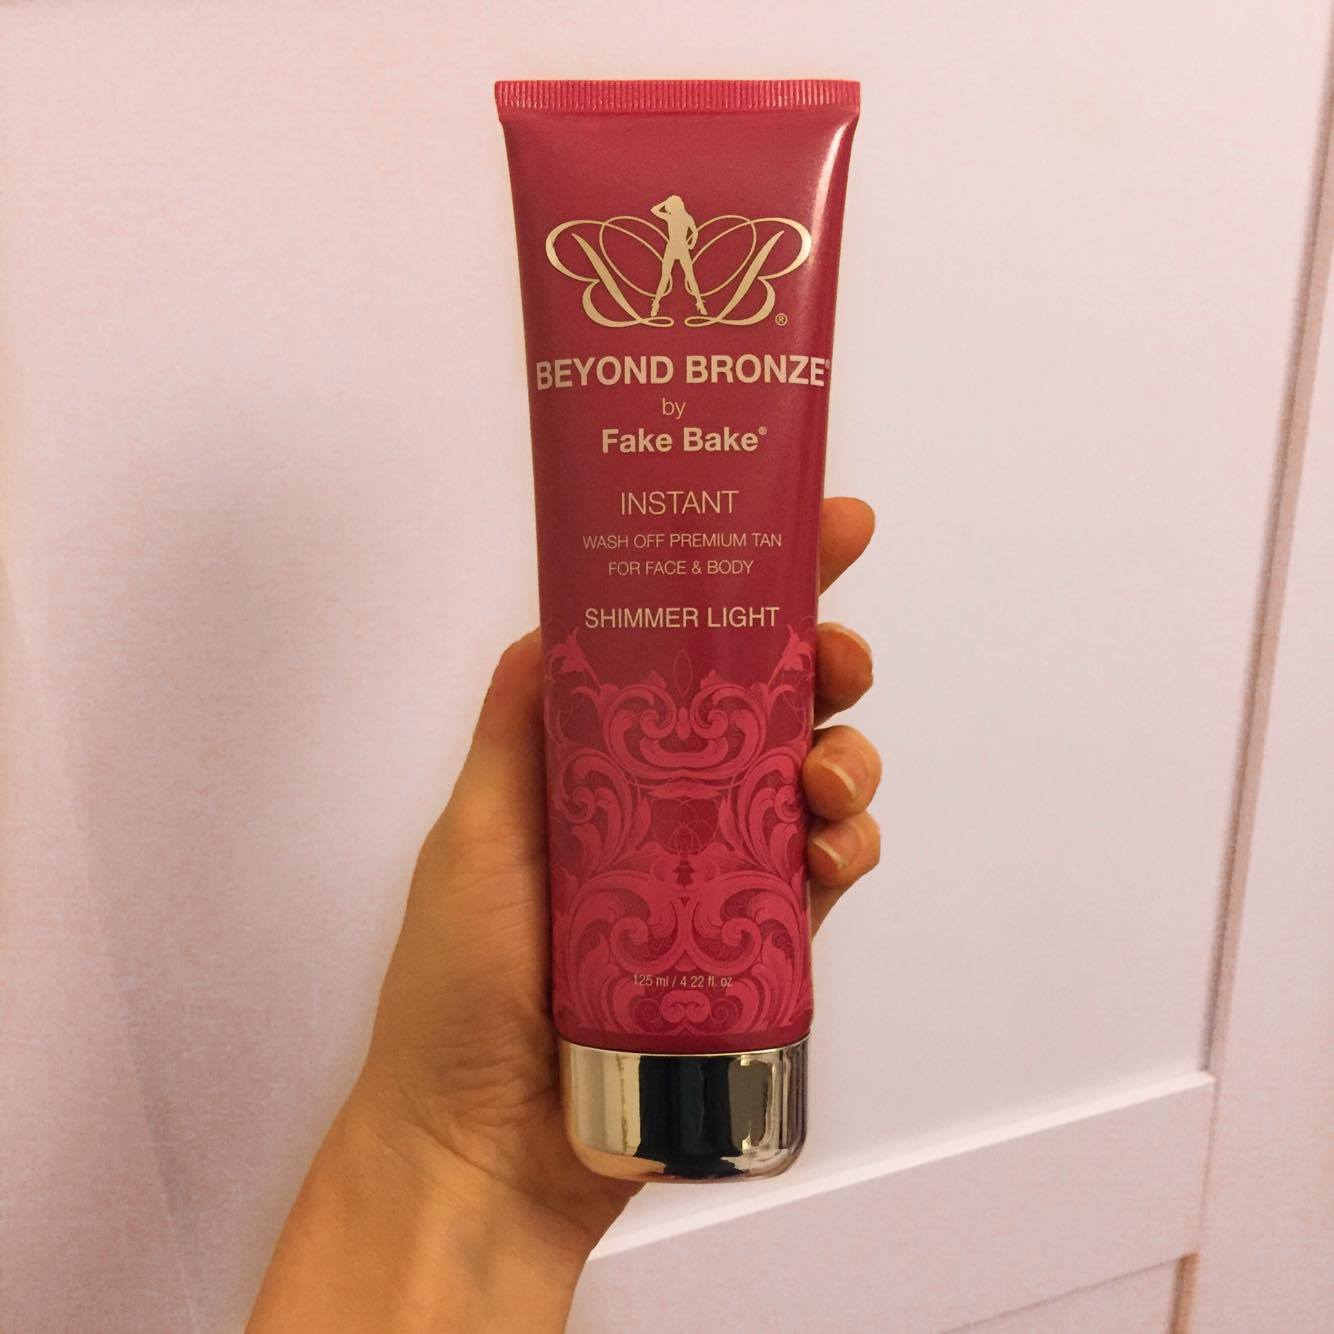 fake bake beyond bronze self tanning instant lotion